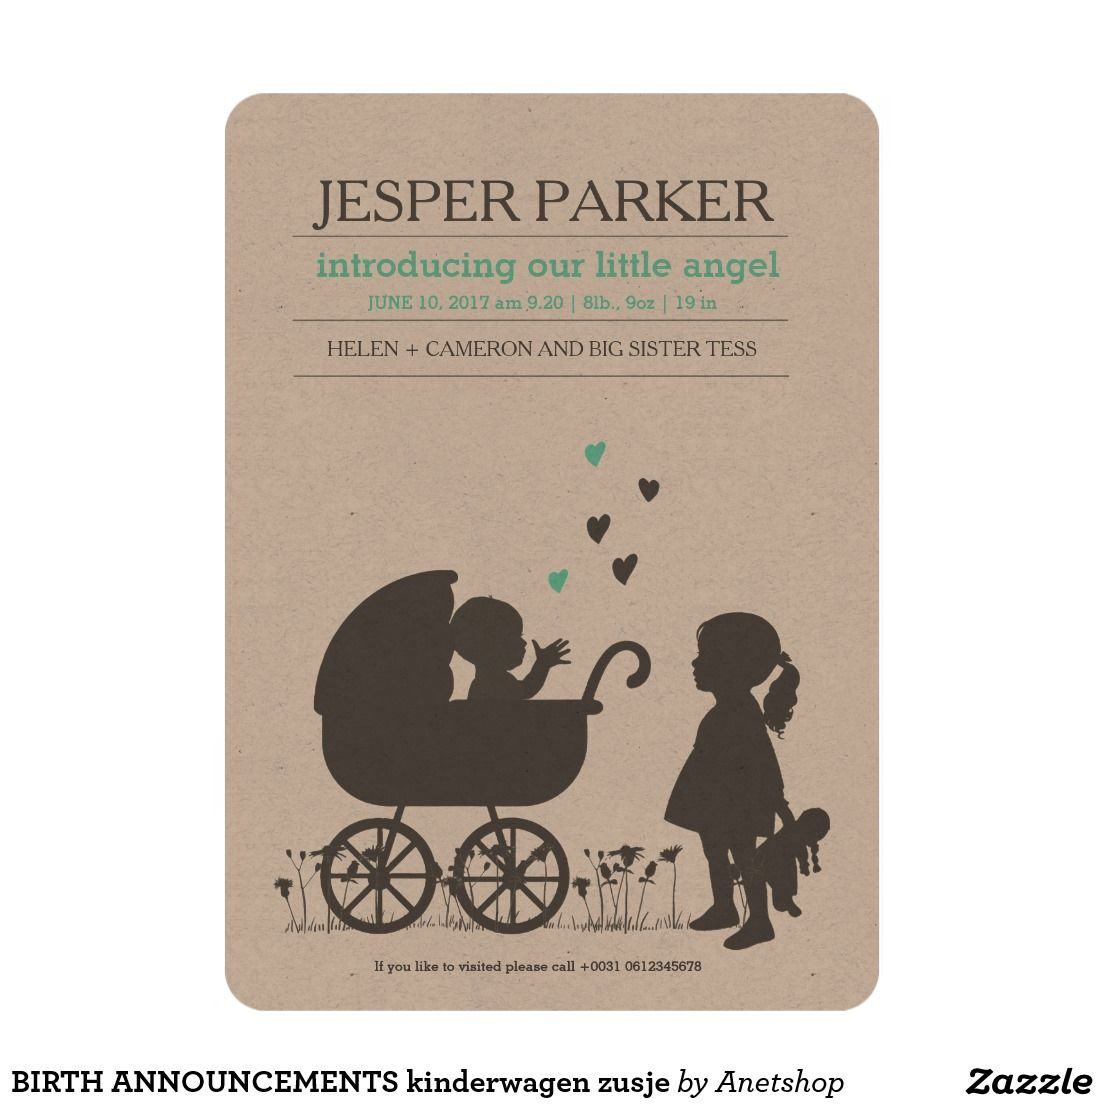 BIRTH ANNOUNCEMENTS kinderwagen zusje